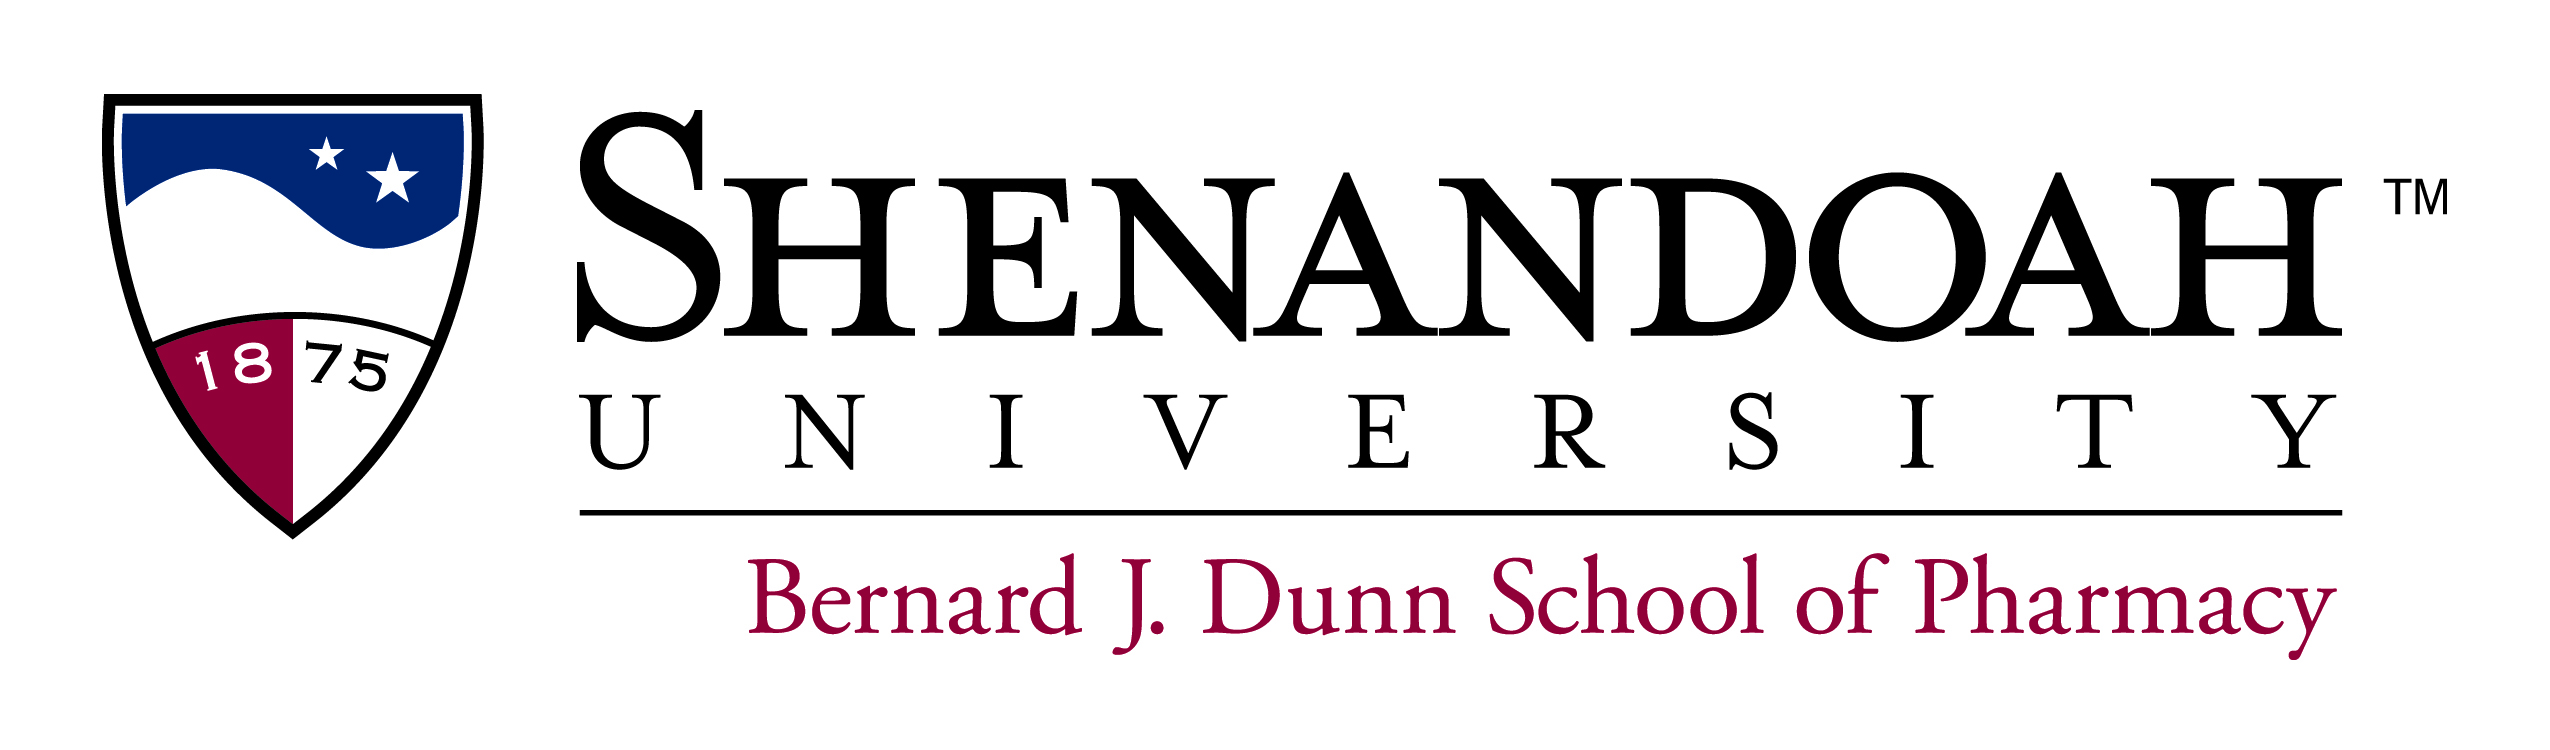 Shenandoah University Bernard J. Dunn School of Pharmacy